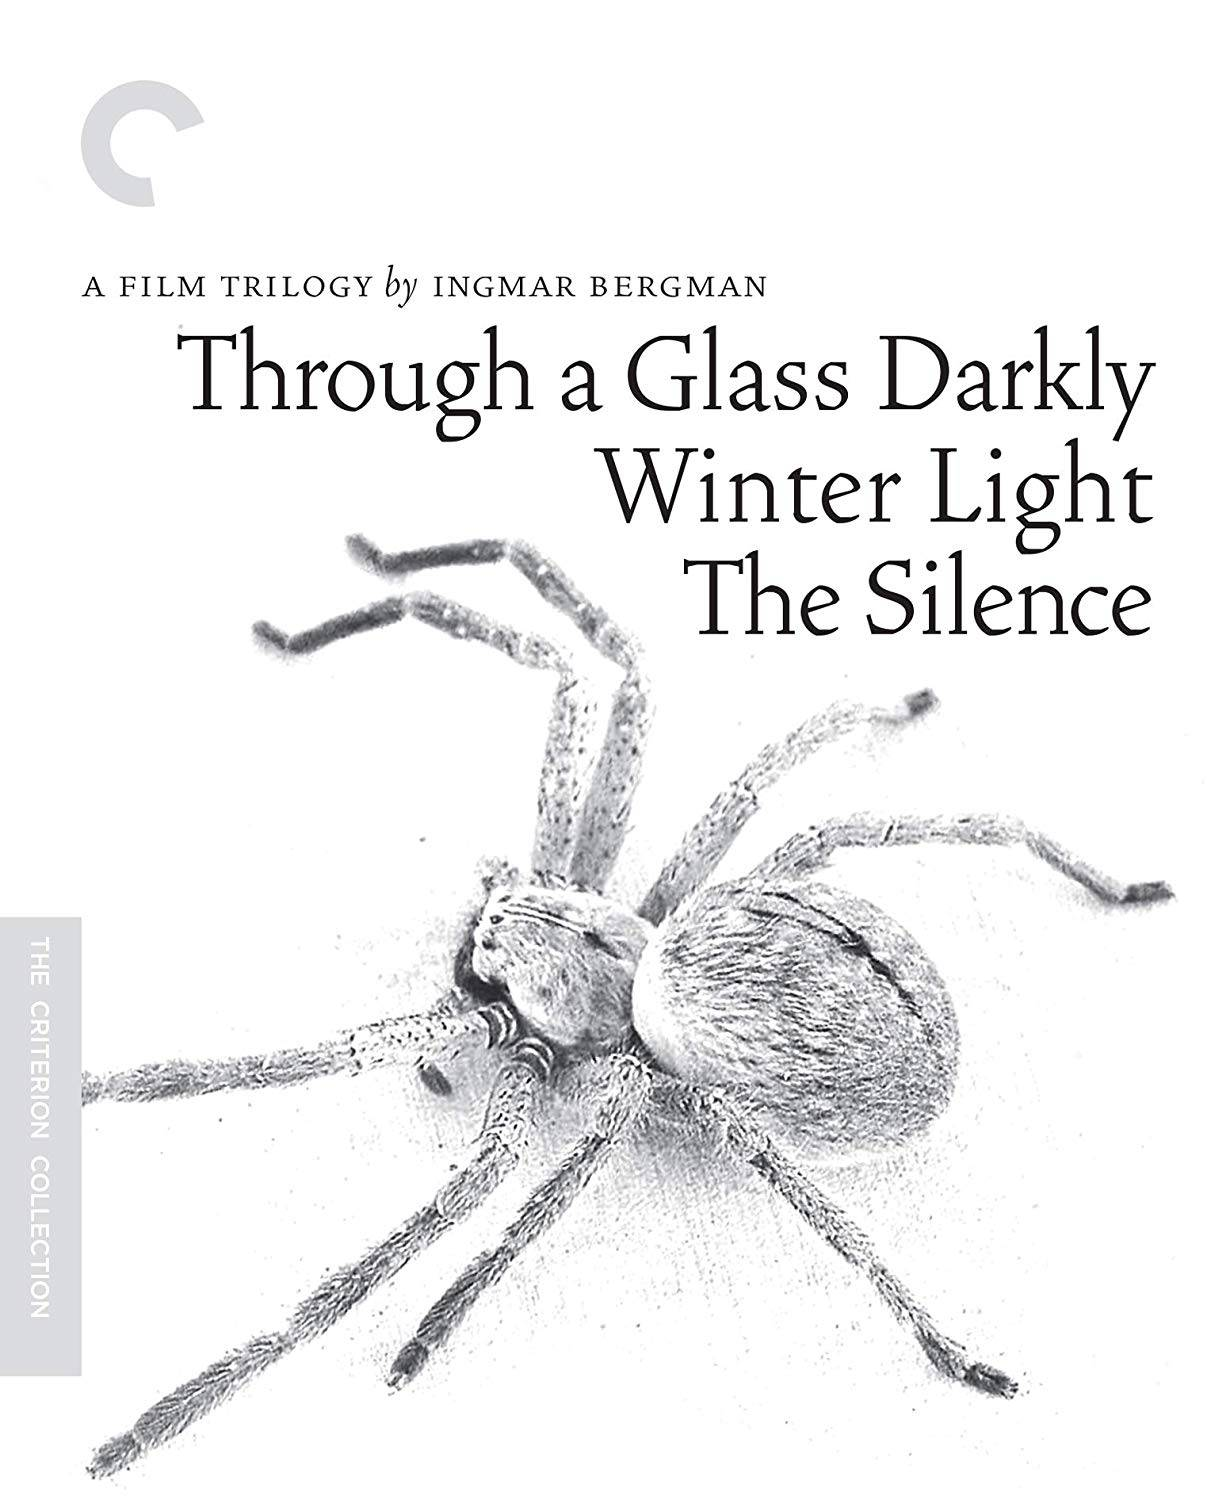 A Film Trilogy By Ingmar Bergman - The Criterion Collection